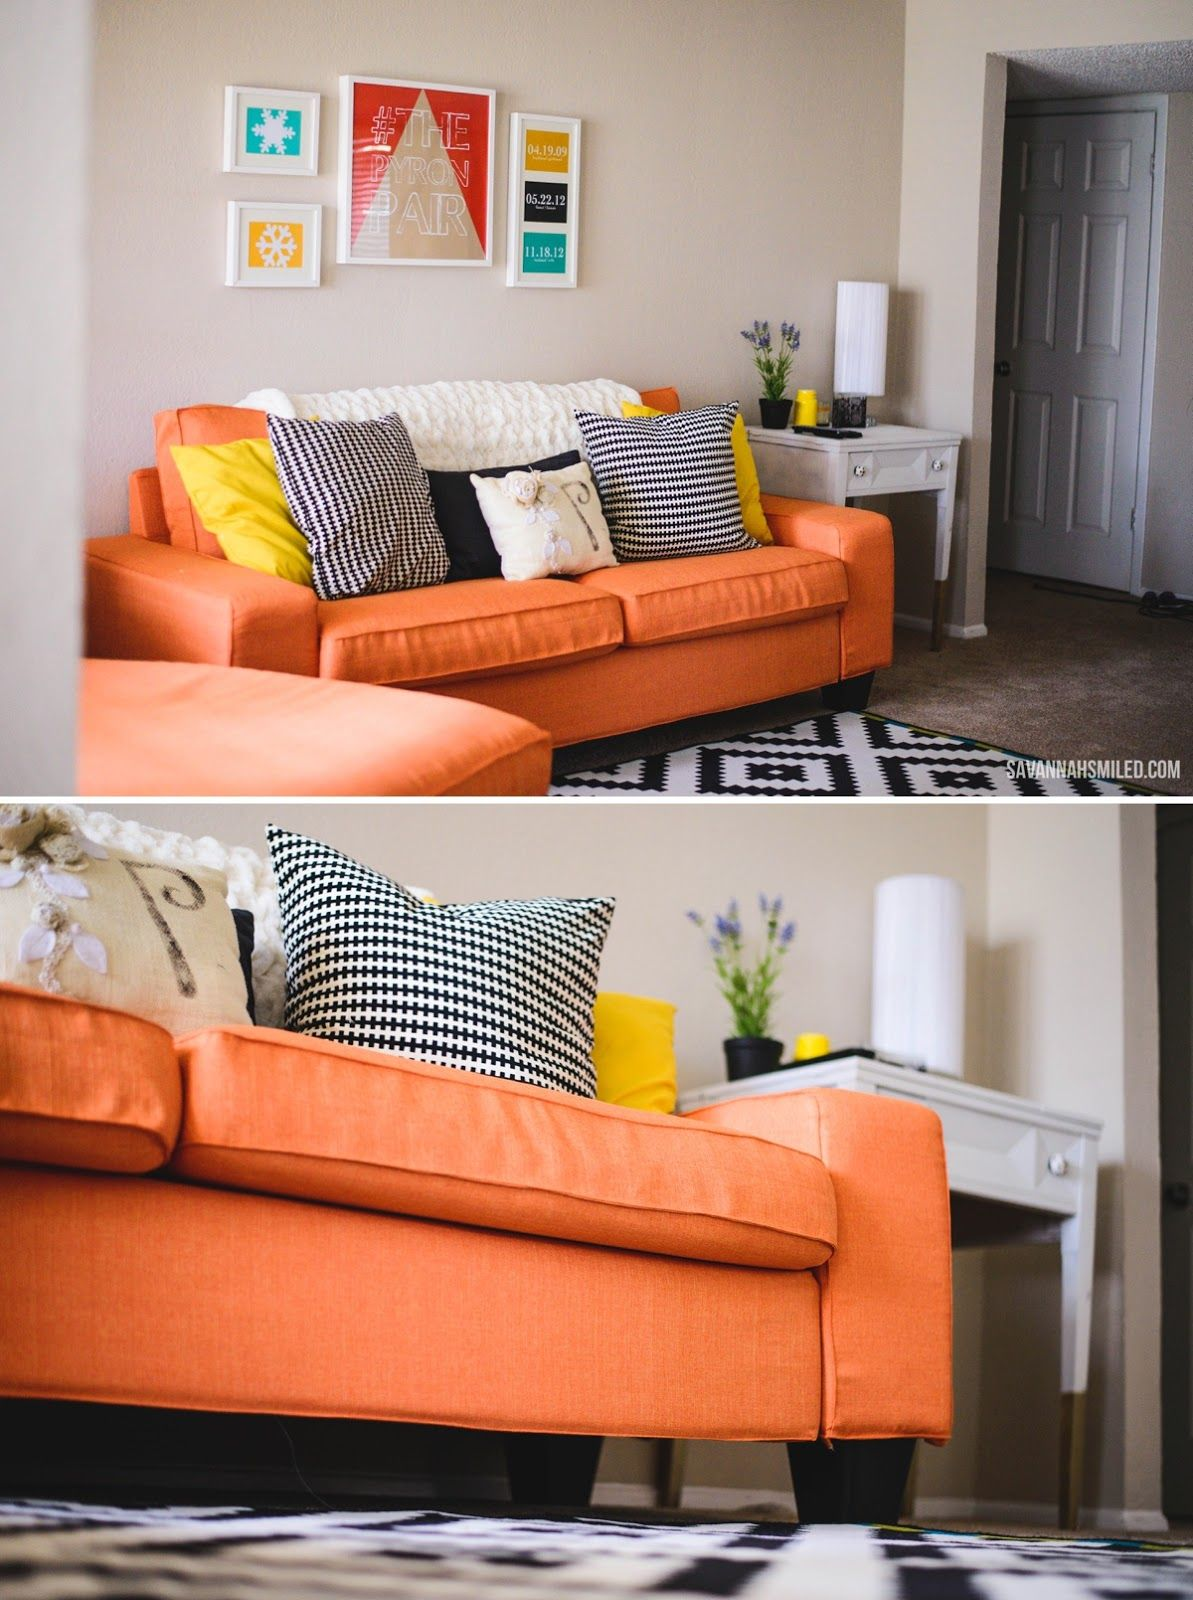 Orange Covers For Your IKEA Sofa #kivik #sofa #covers #ikea #comfort